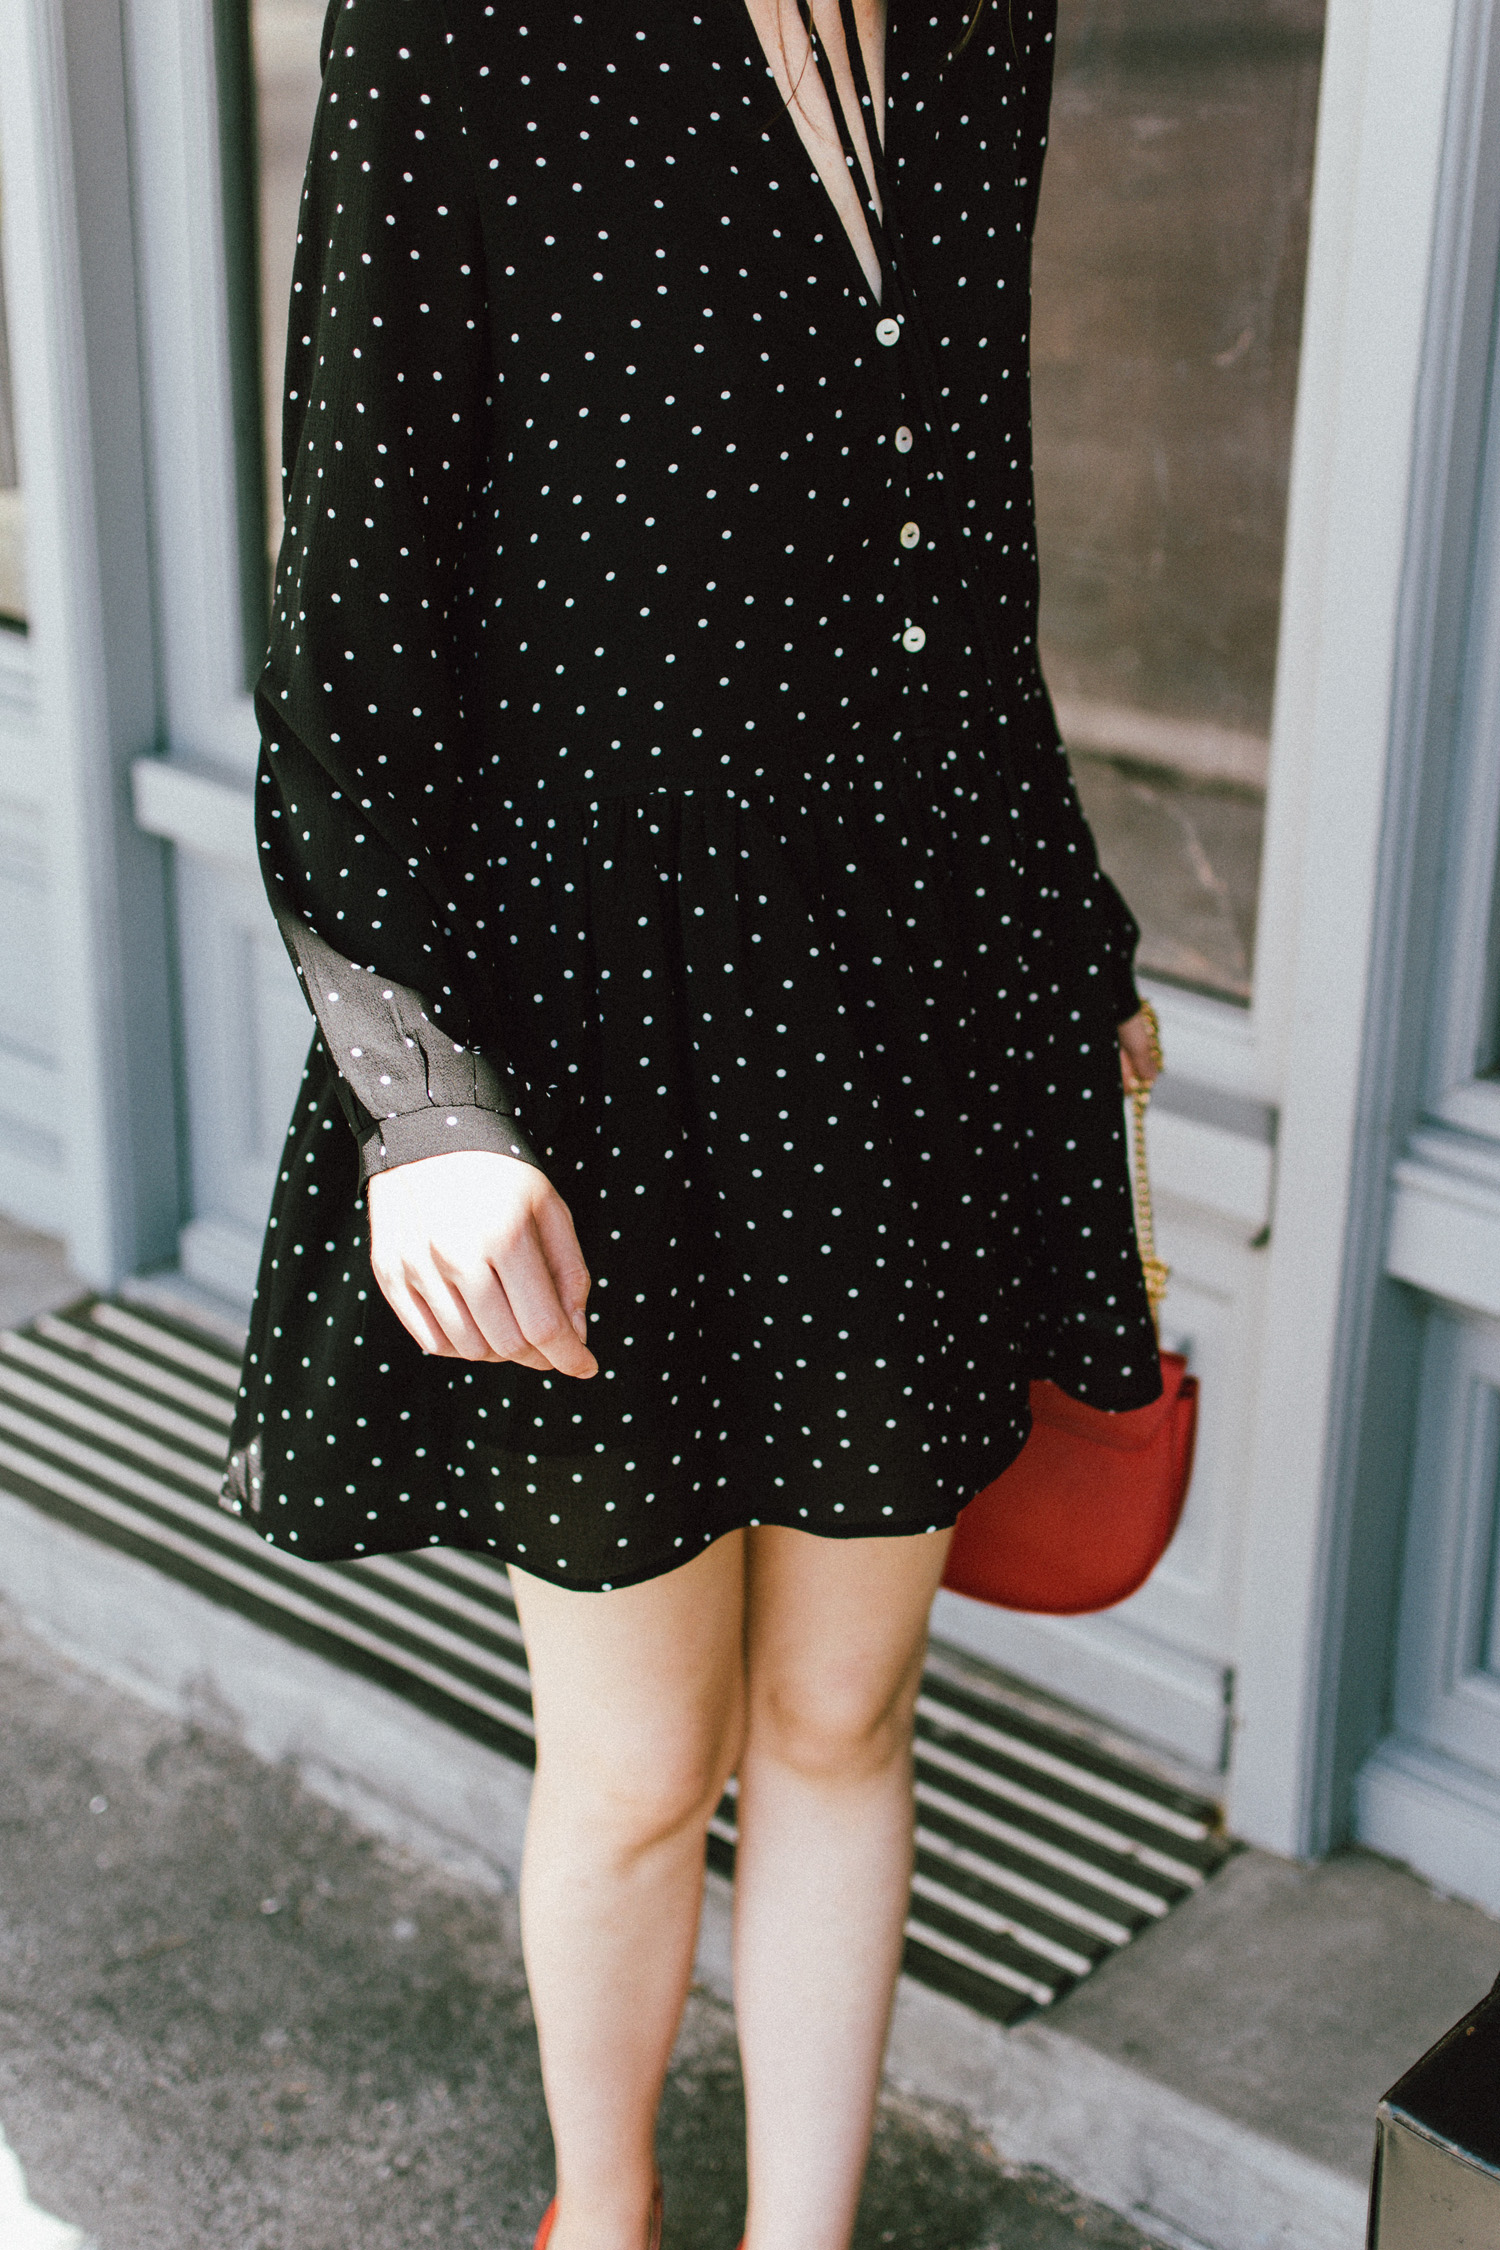 How To Appropriately Wear A Mini Dress Couturezilla